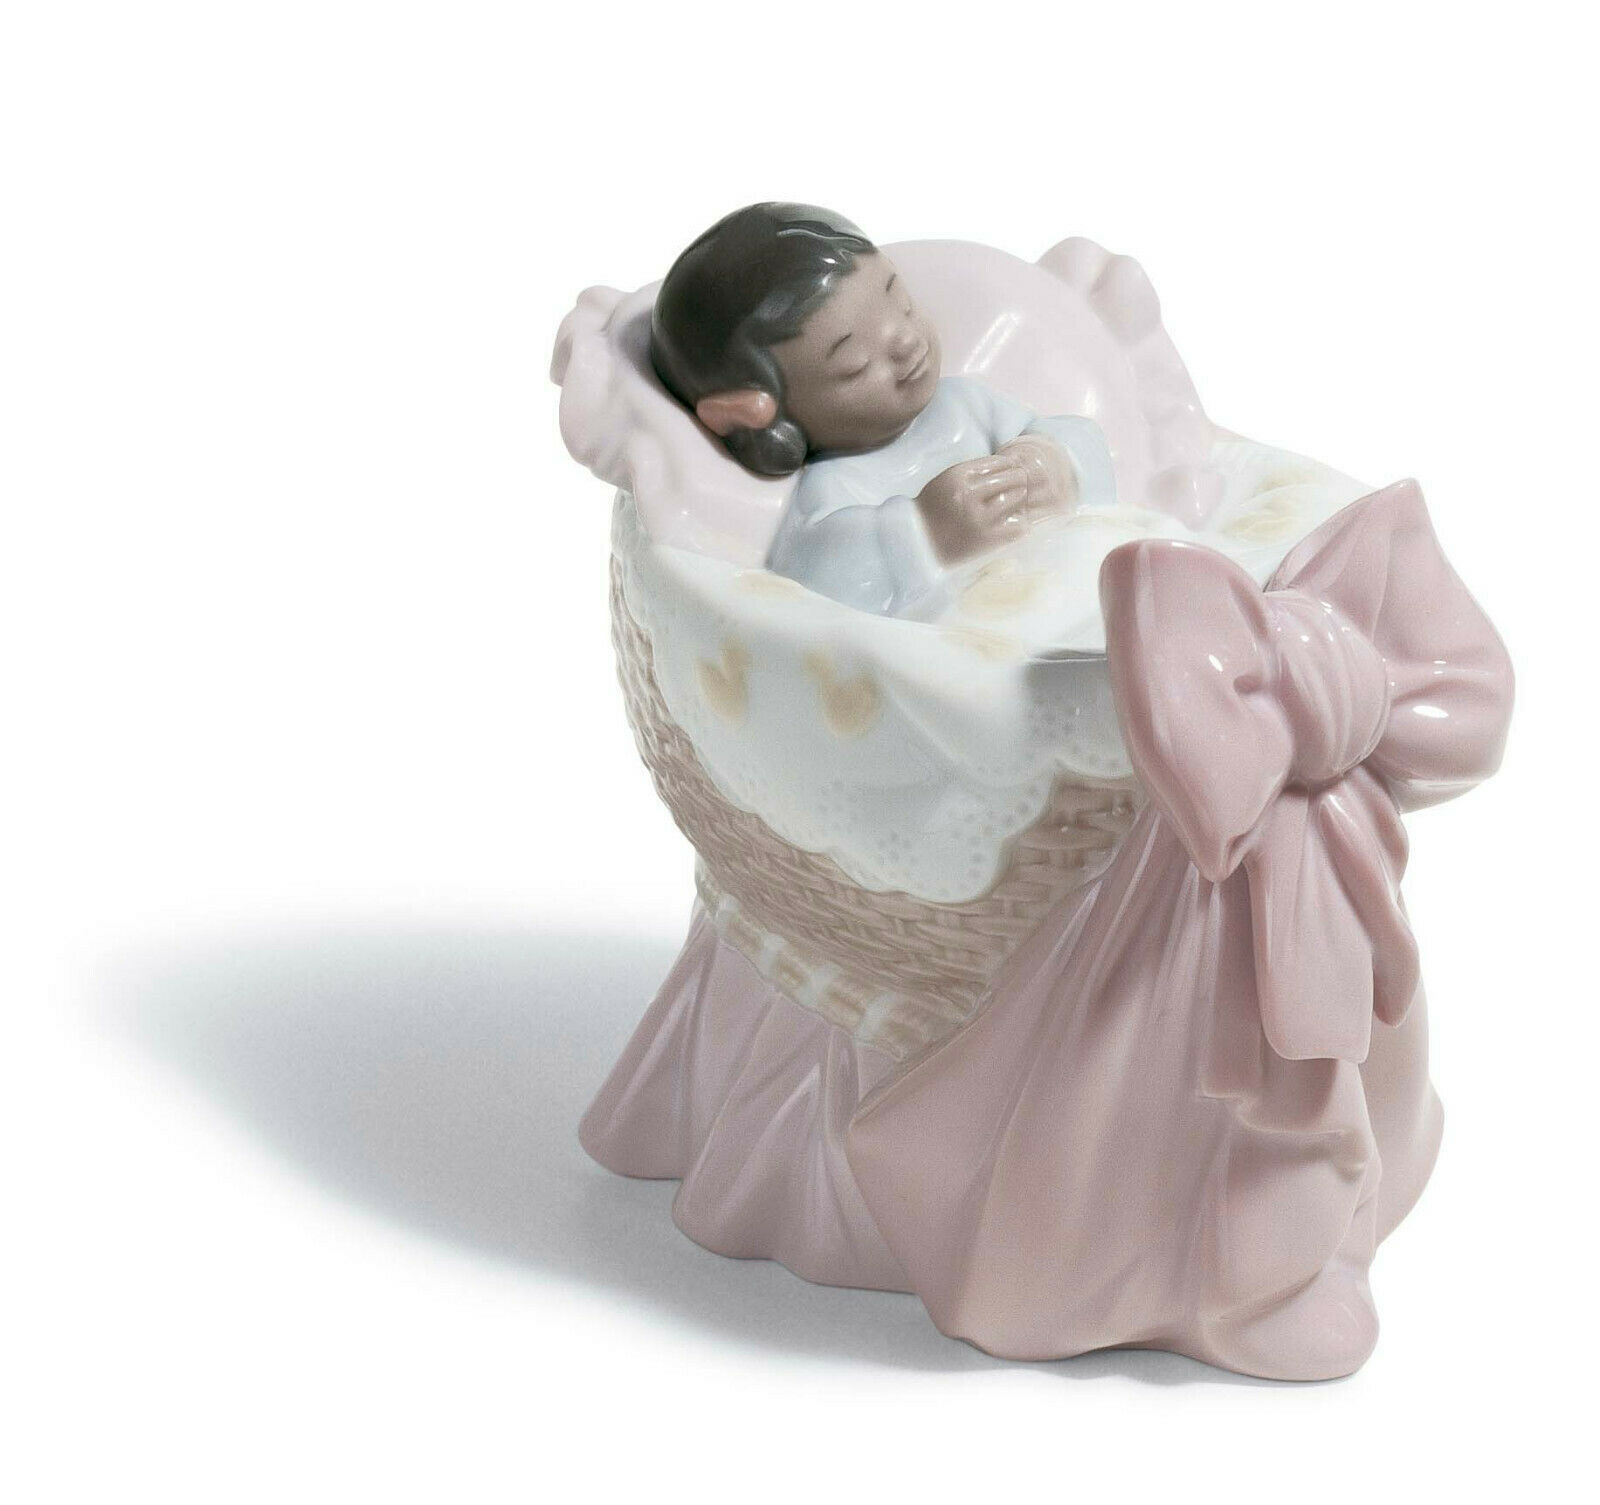 Primary image for Lladro 01008255 A New Treasure (Girl) Black Legacy Porcelain Figurine New